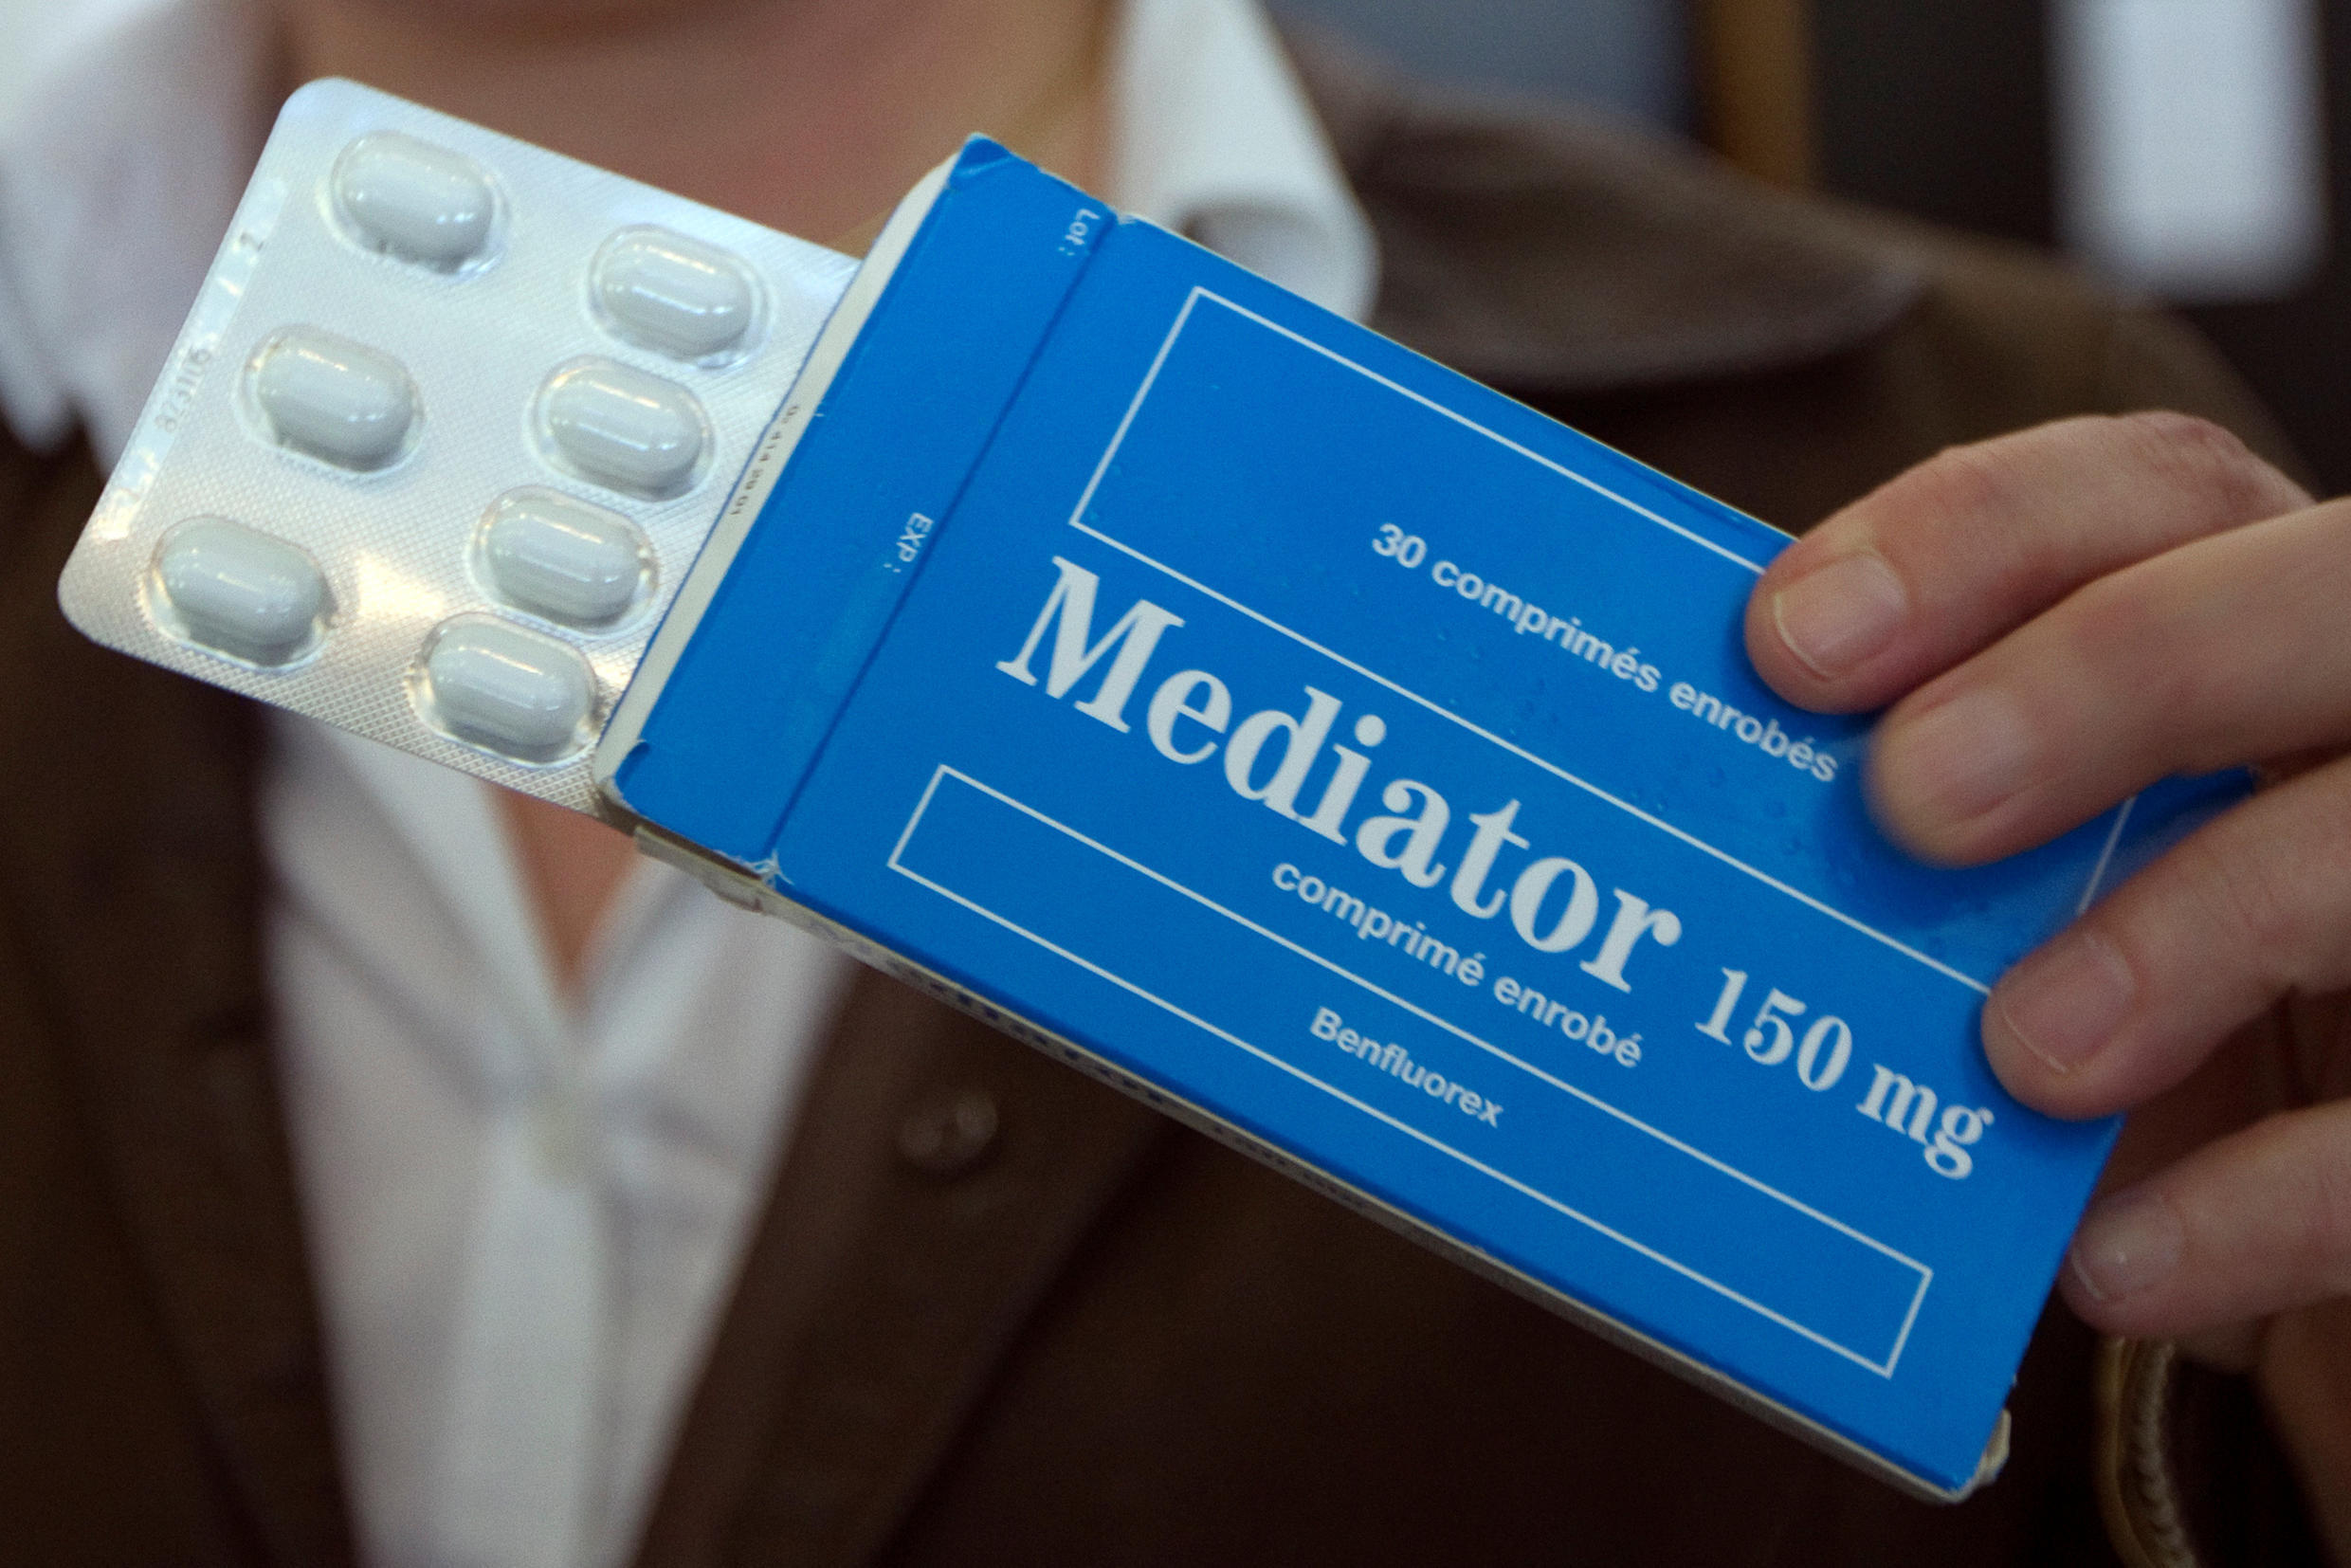 Mediator pills, developed to treat diabetes, are believed to have caused between 500 and 2,100 related deaths in France.